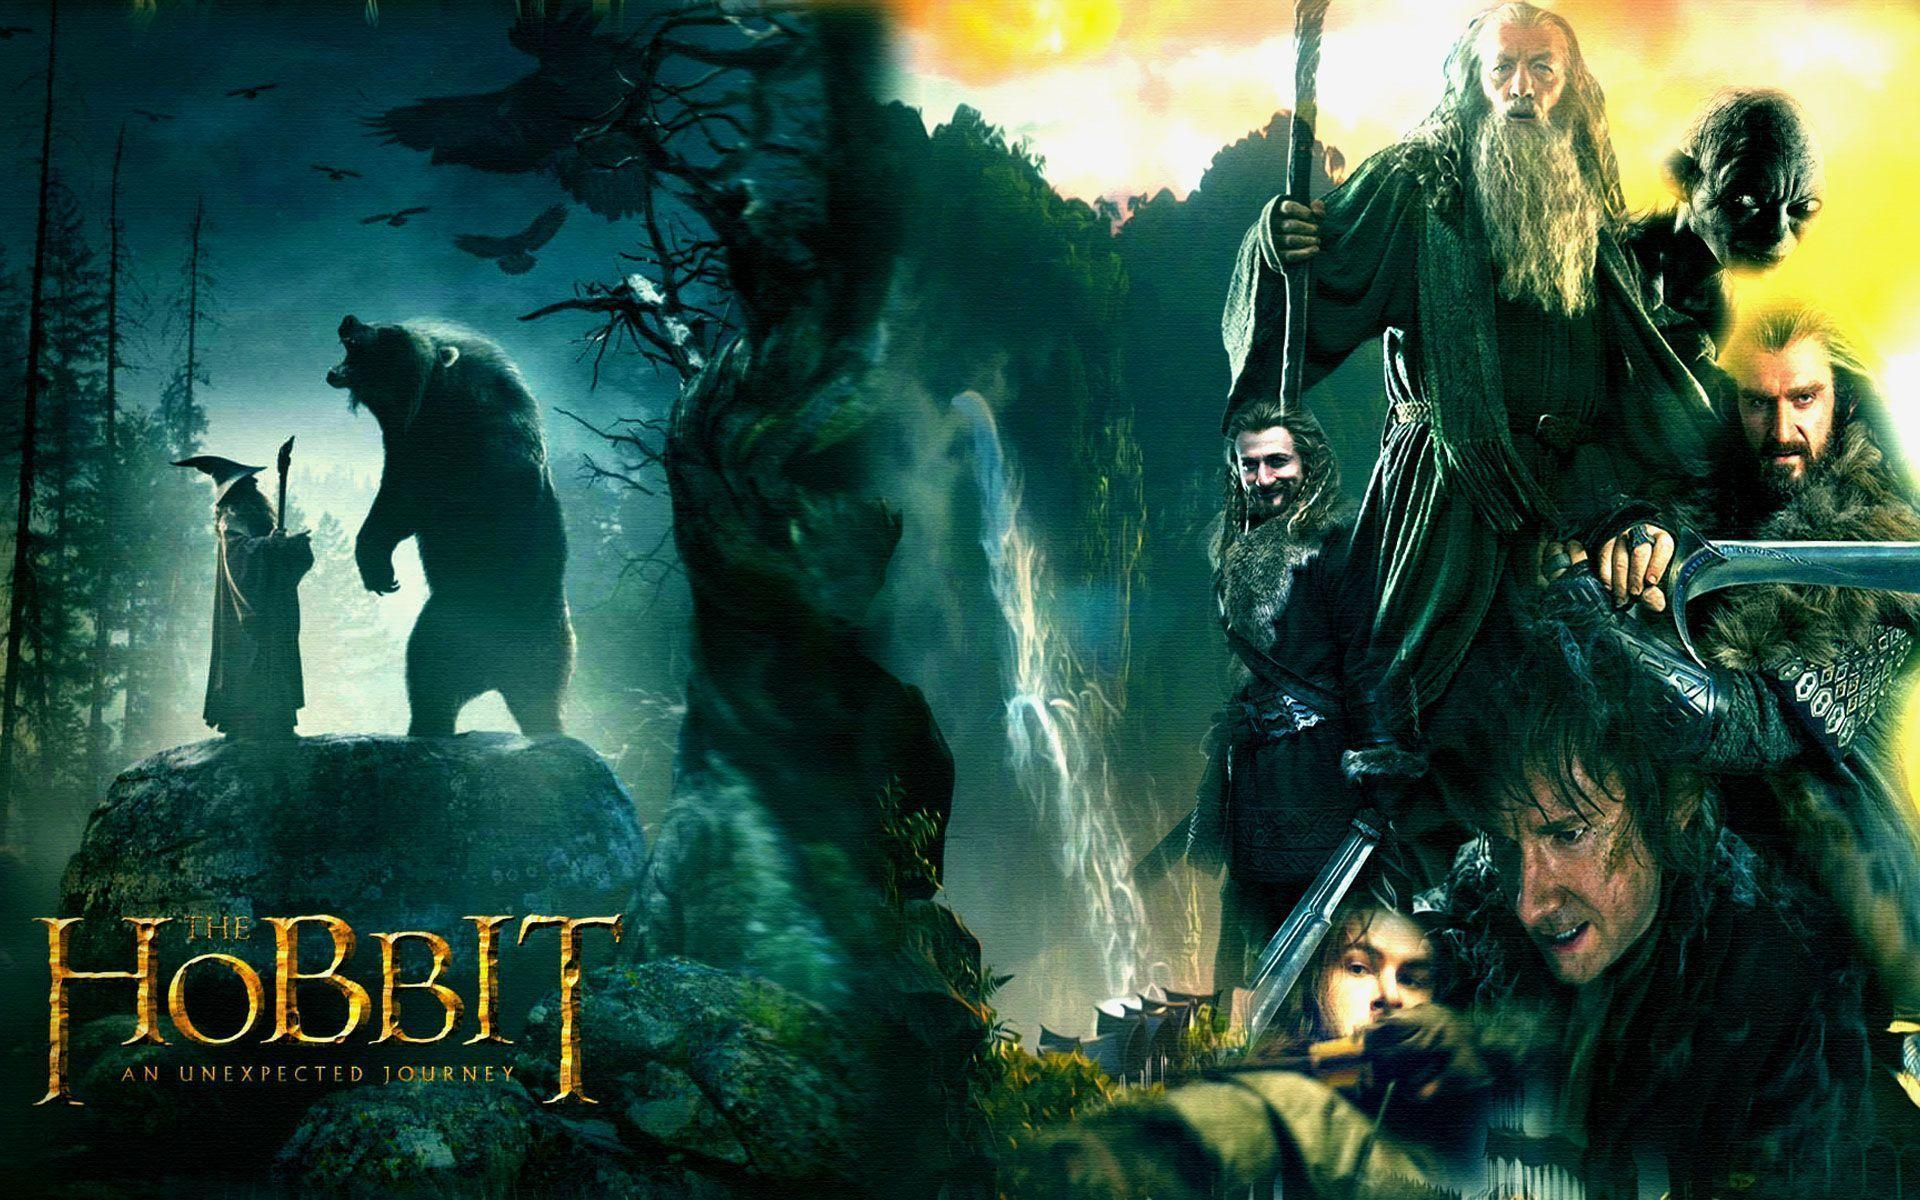 The Hobbit Movie Wallpapers 1920x1200